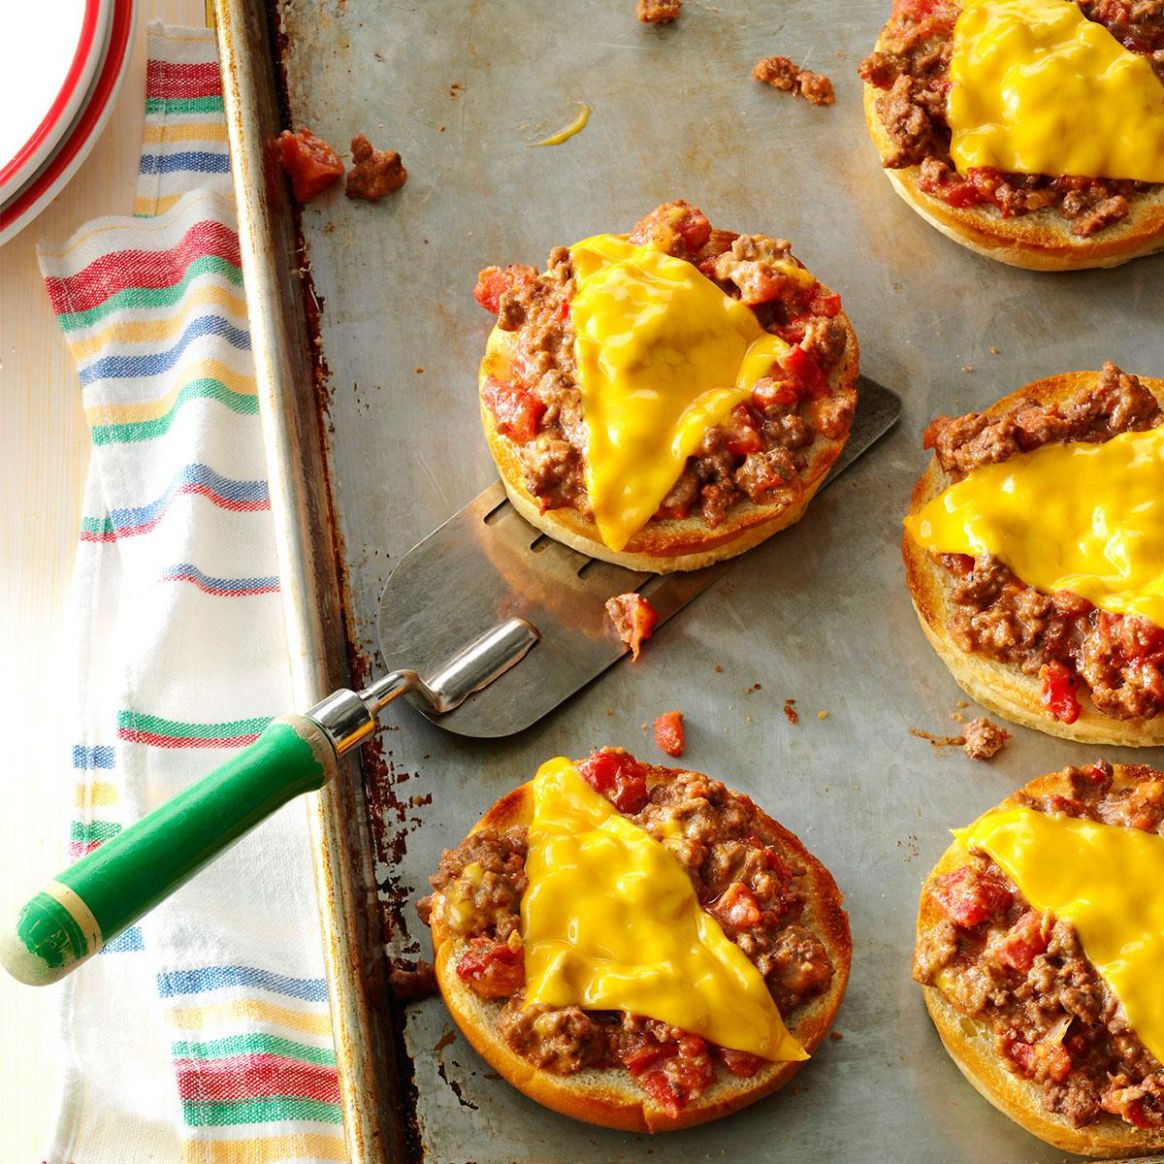 Broiled Pizza Burgers - Recipes For Pizza Burgers